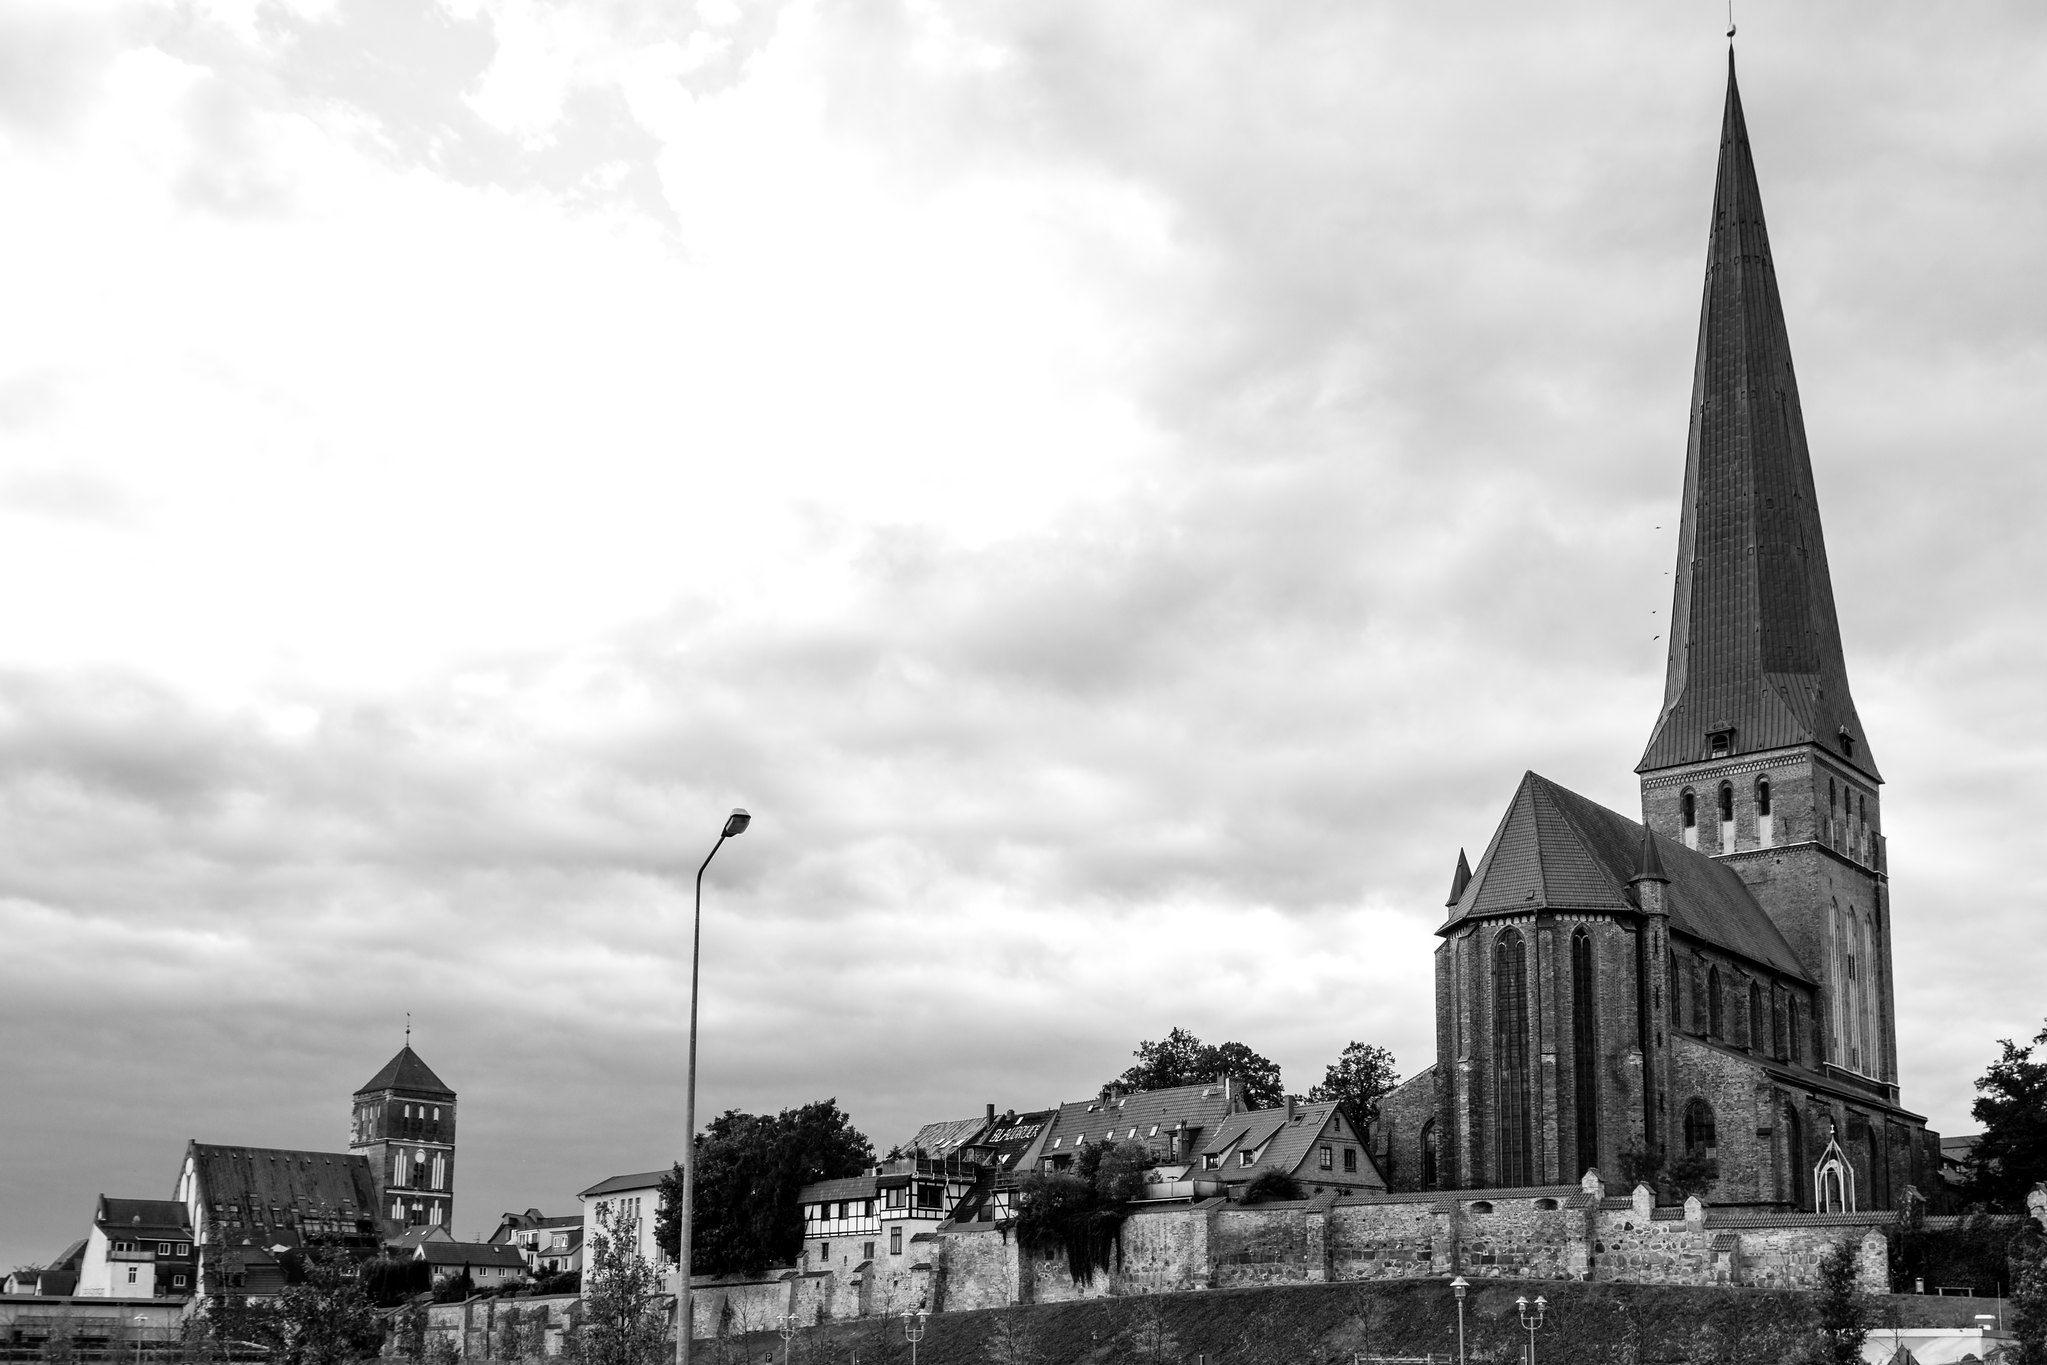 Two Churches in Rostock